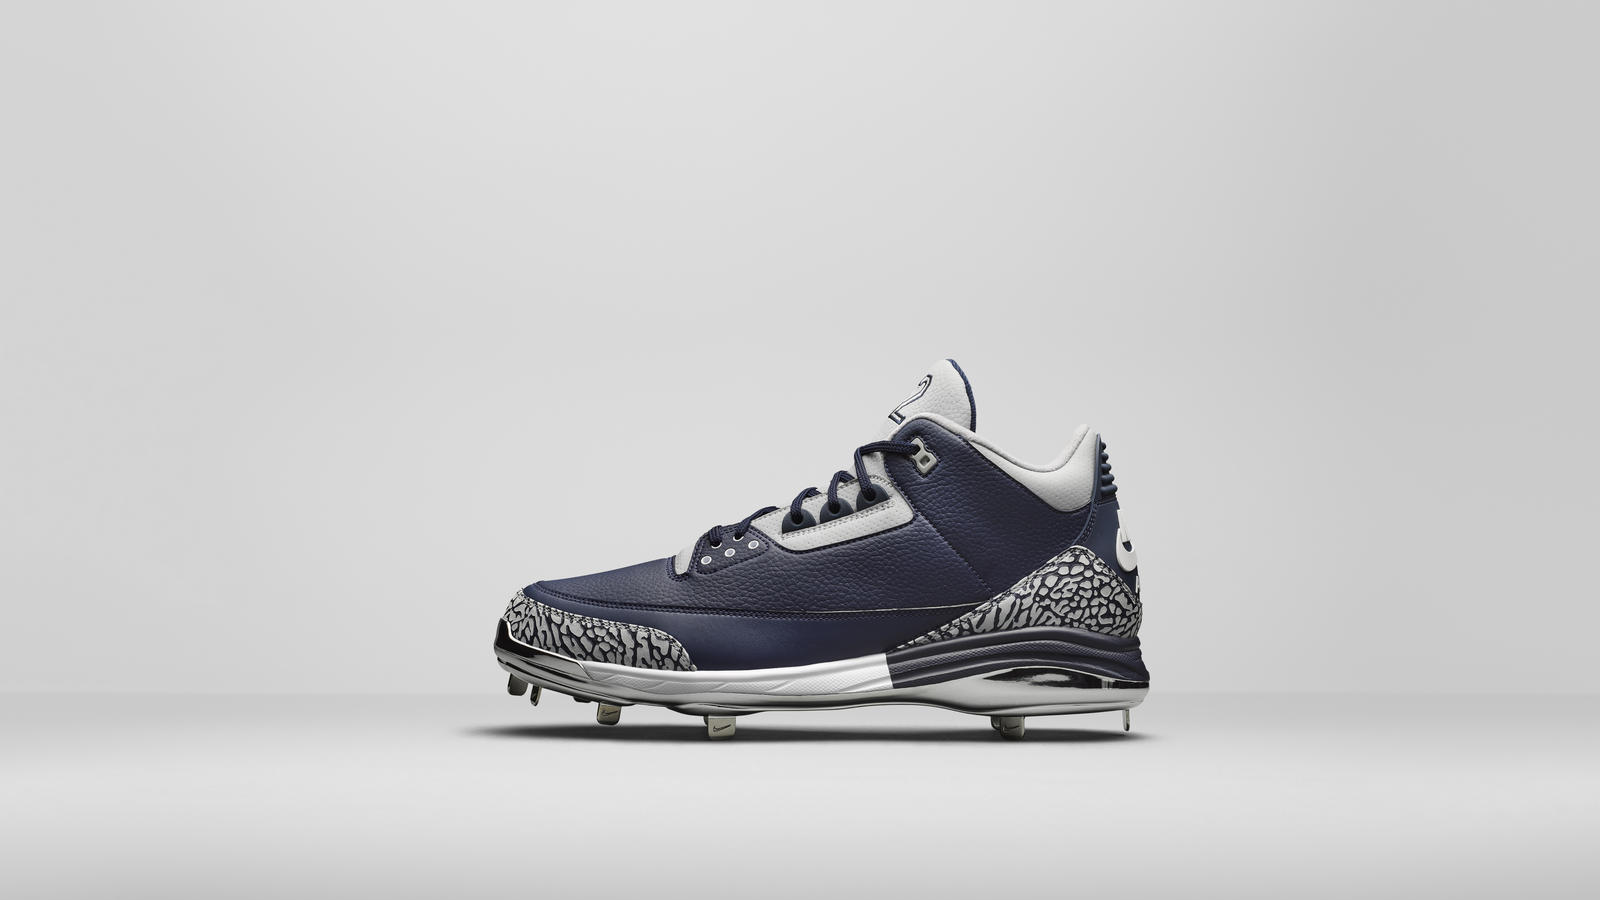 CC Sabathia PE Cleats New York Yankees 3